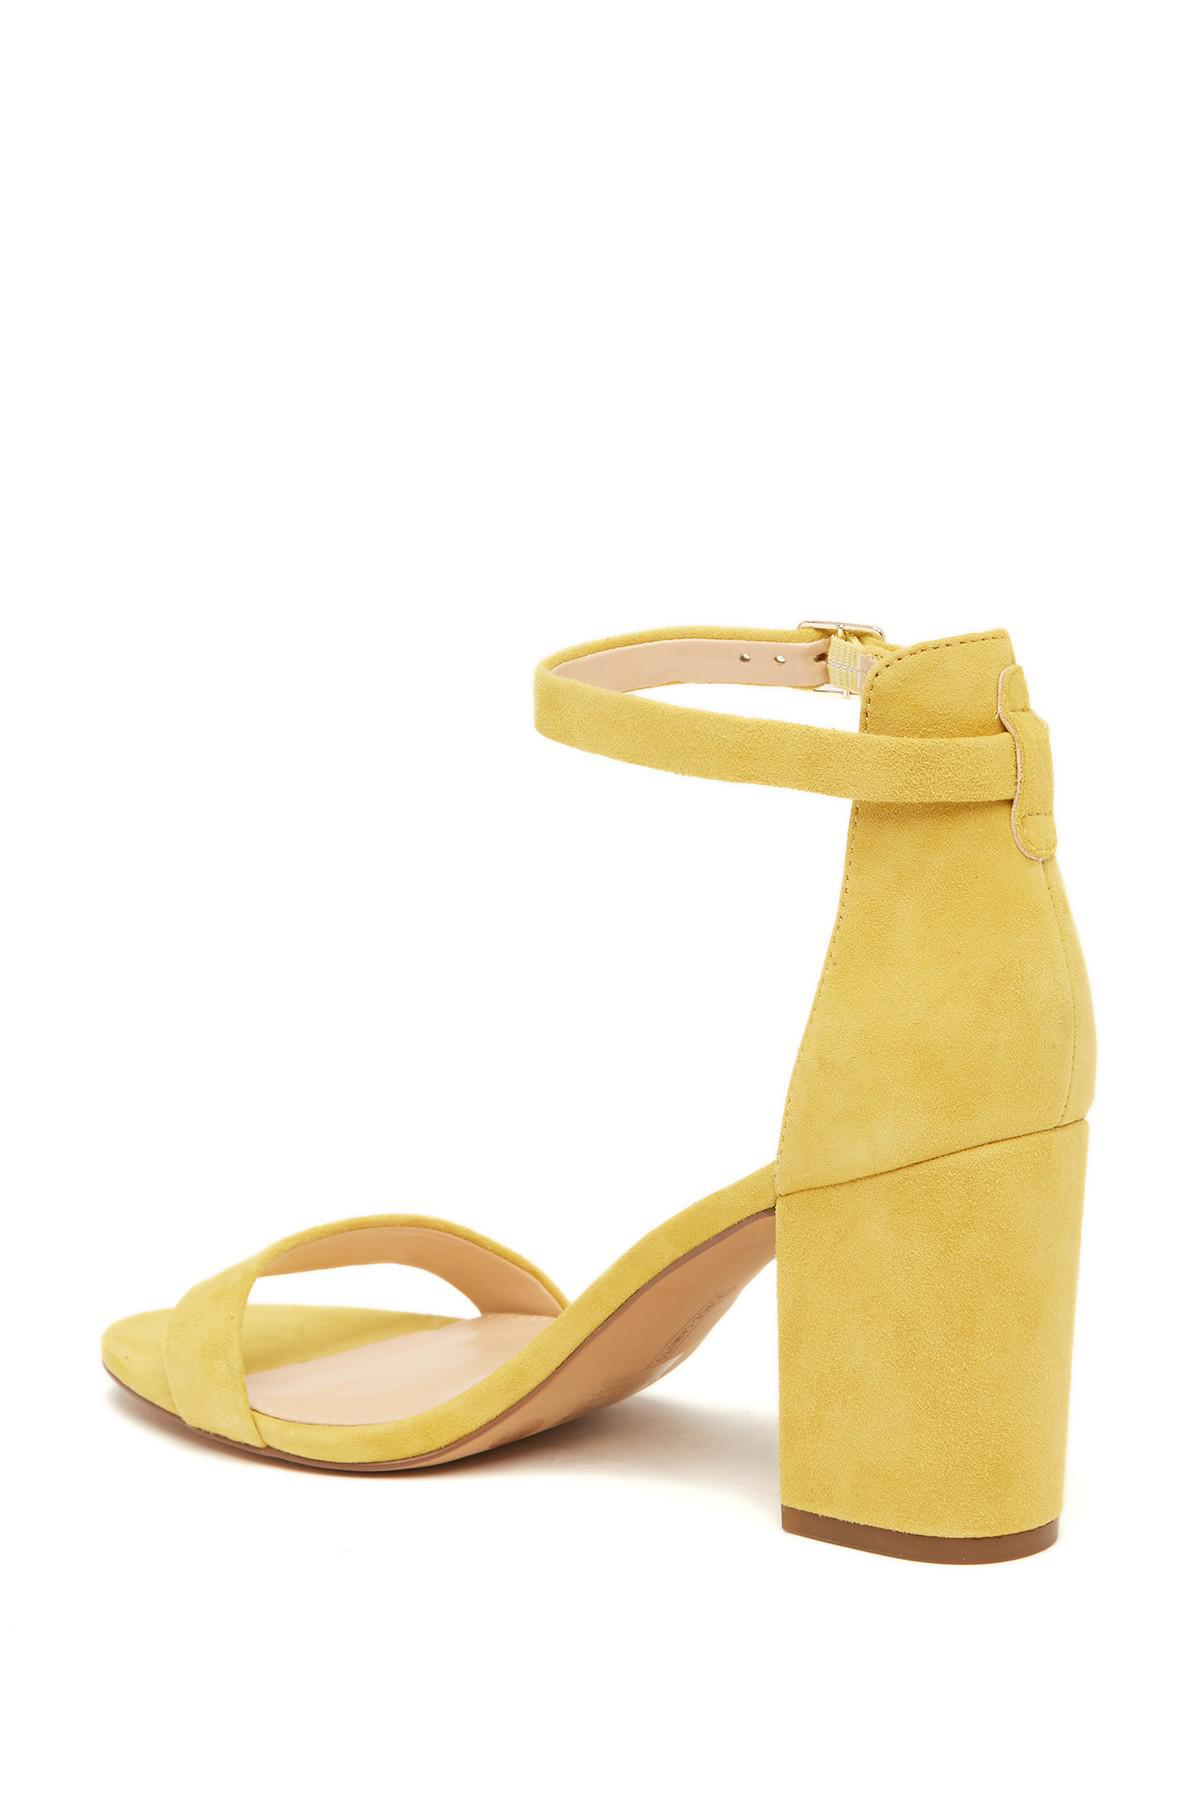 0386a21e3d8 Lyst - Vince Camuto Beah Block Heel Ankle Strap Sandal in Yellow